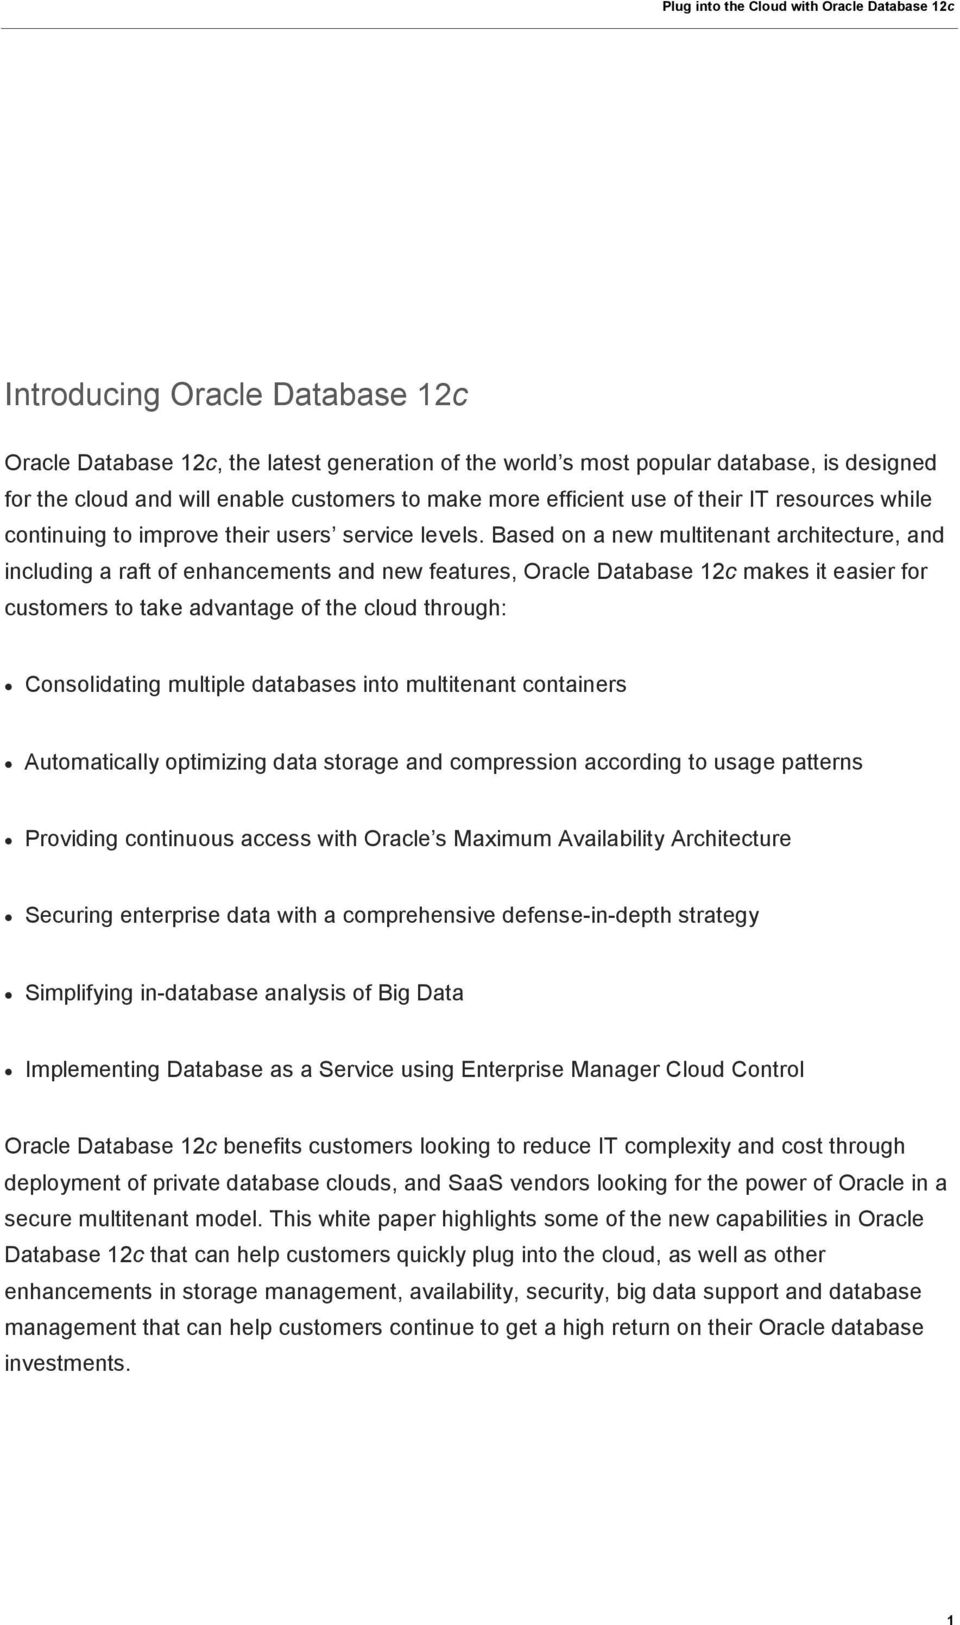 Based on a new multitenant architecture, and including a raft of enhancements and new features, Oracle Database 12c makes it easier for customers to take advantage of the cloud through: Consolidating